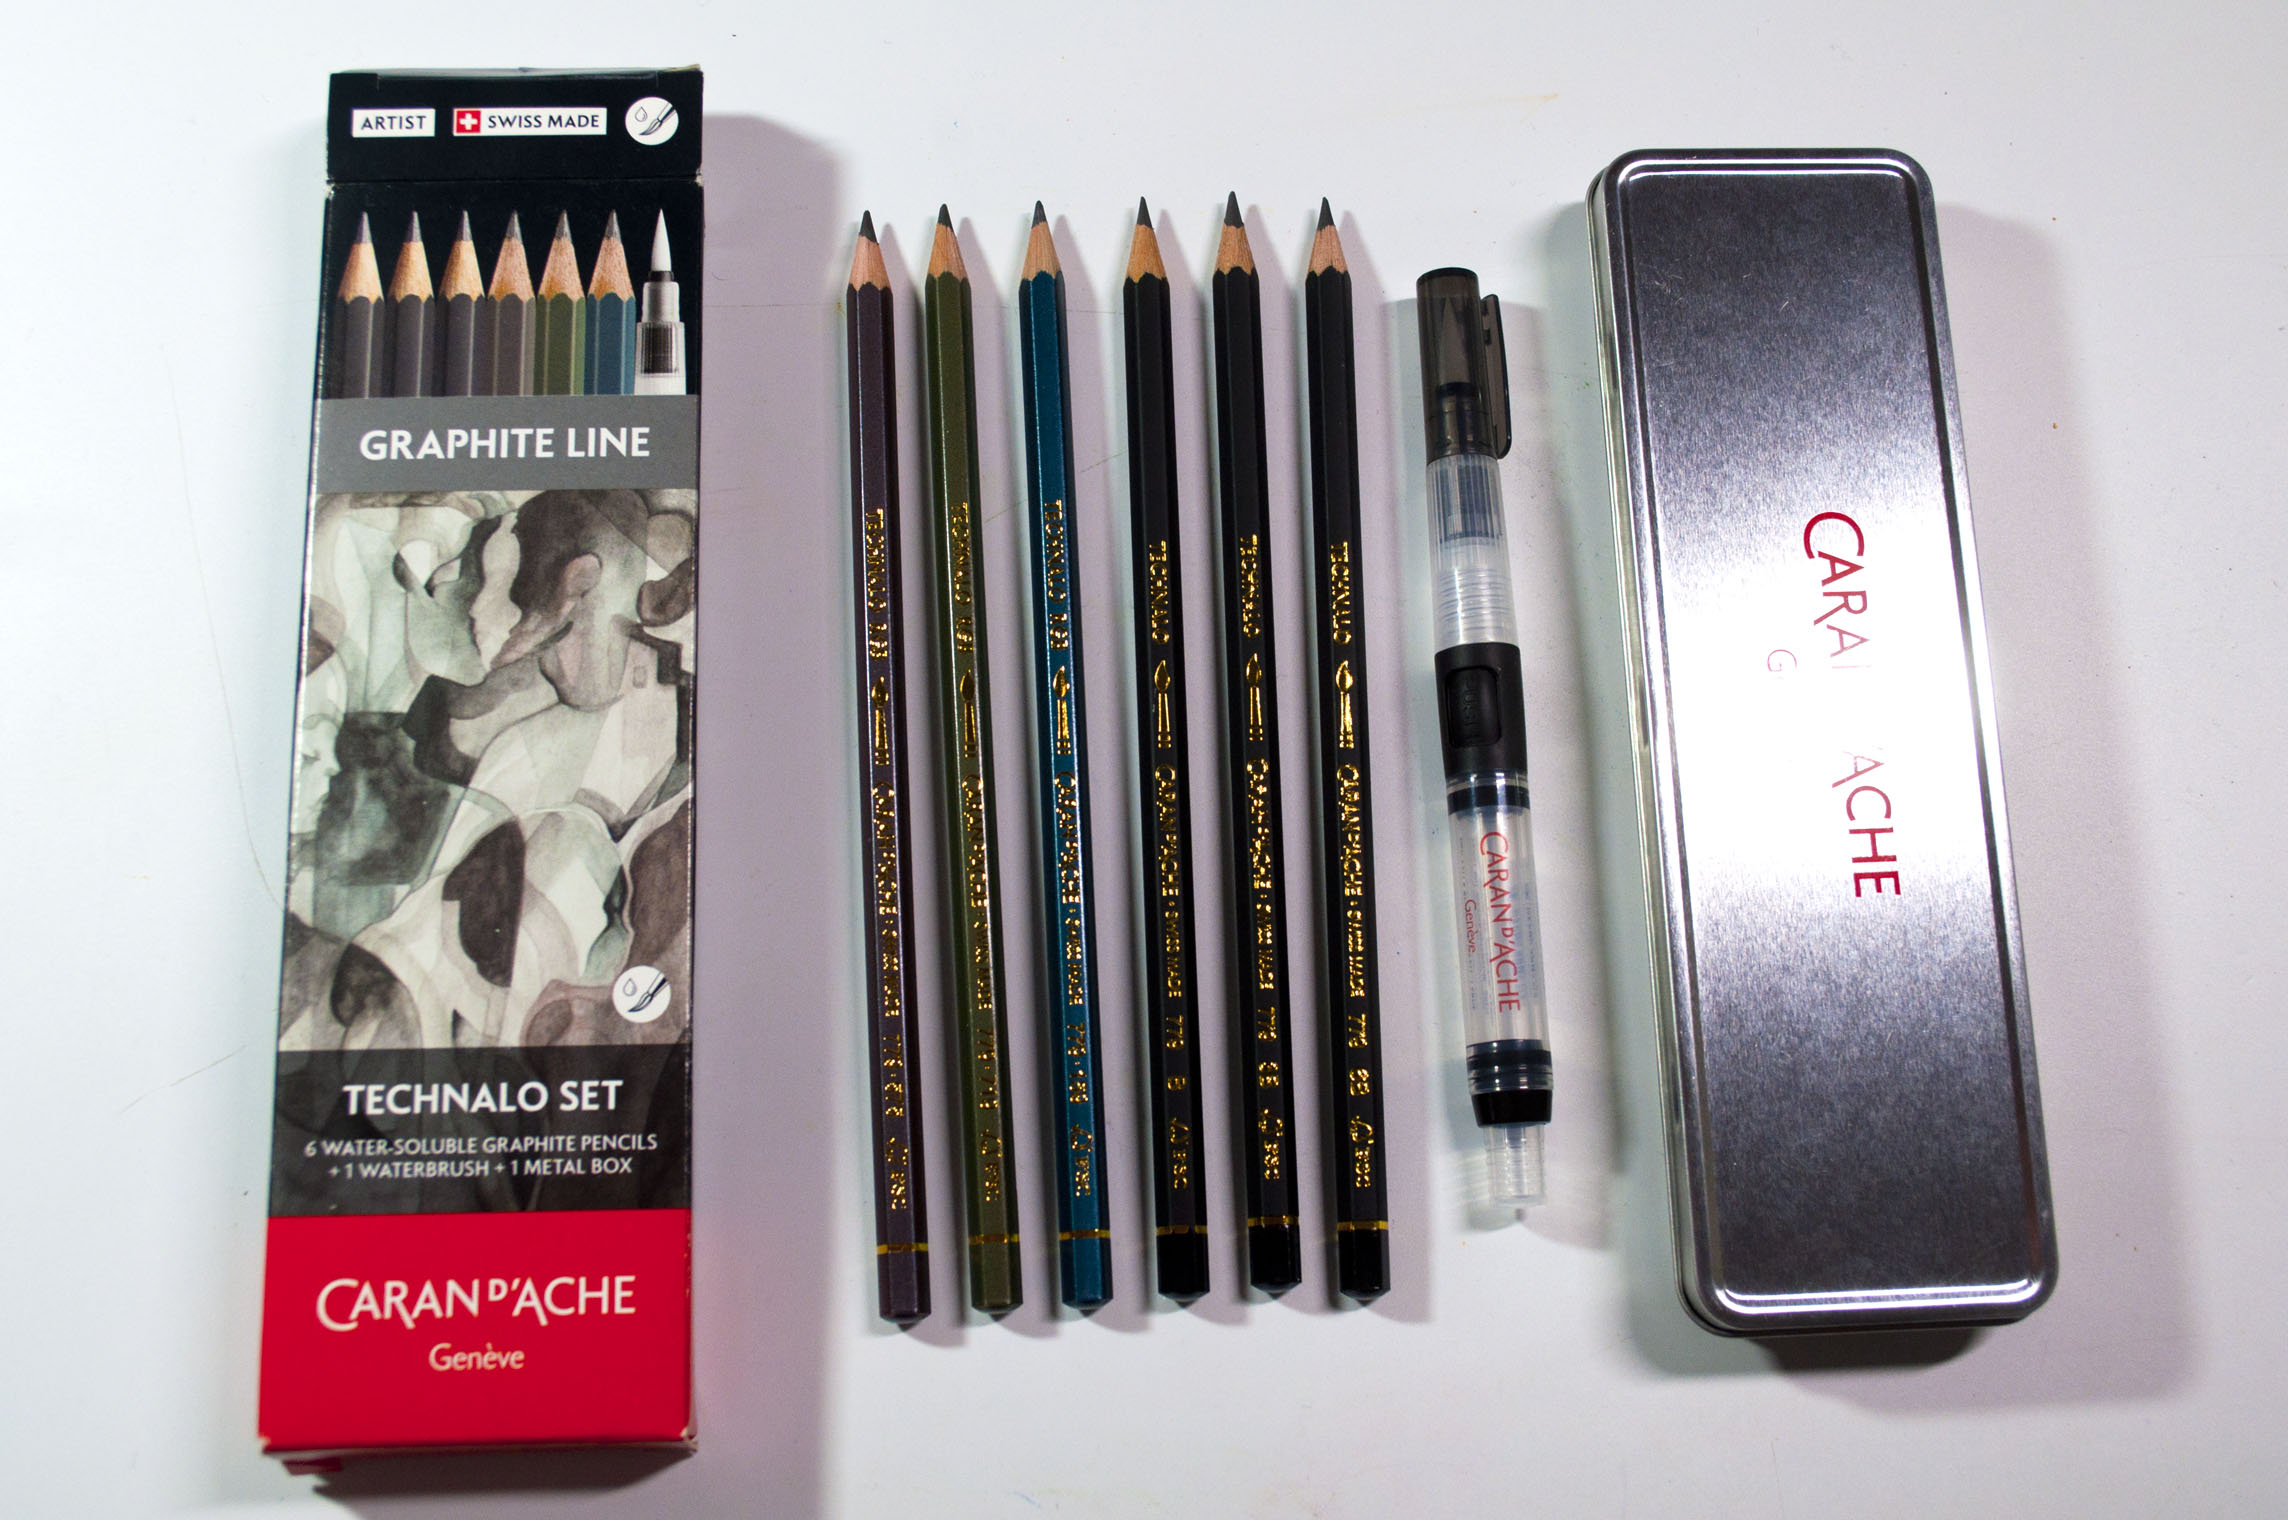 Image result for caran d'ache technalo and water soluble tinted graphite